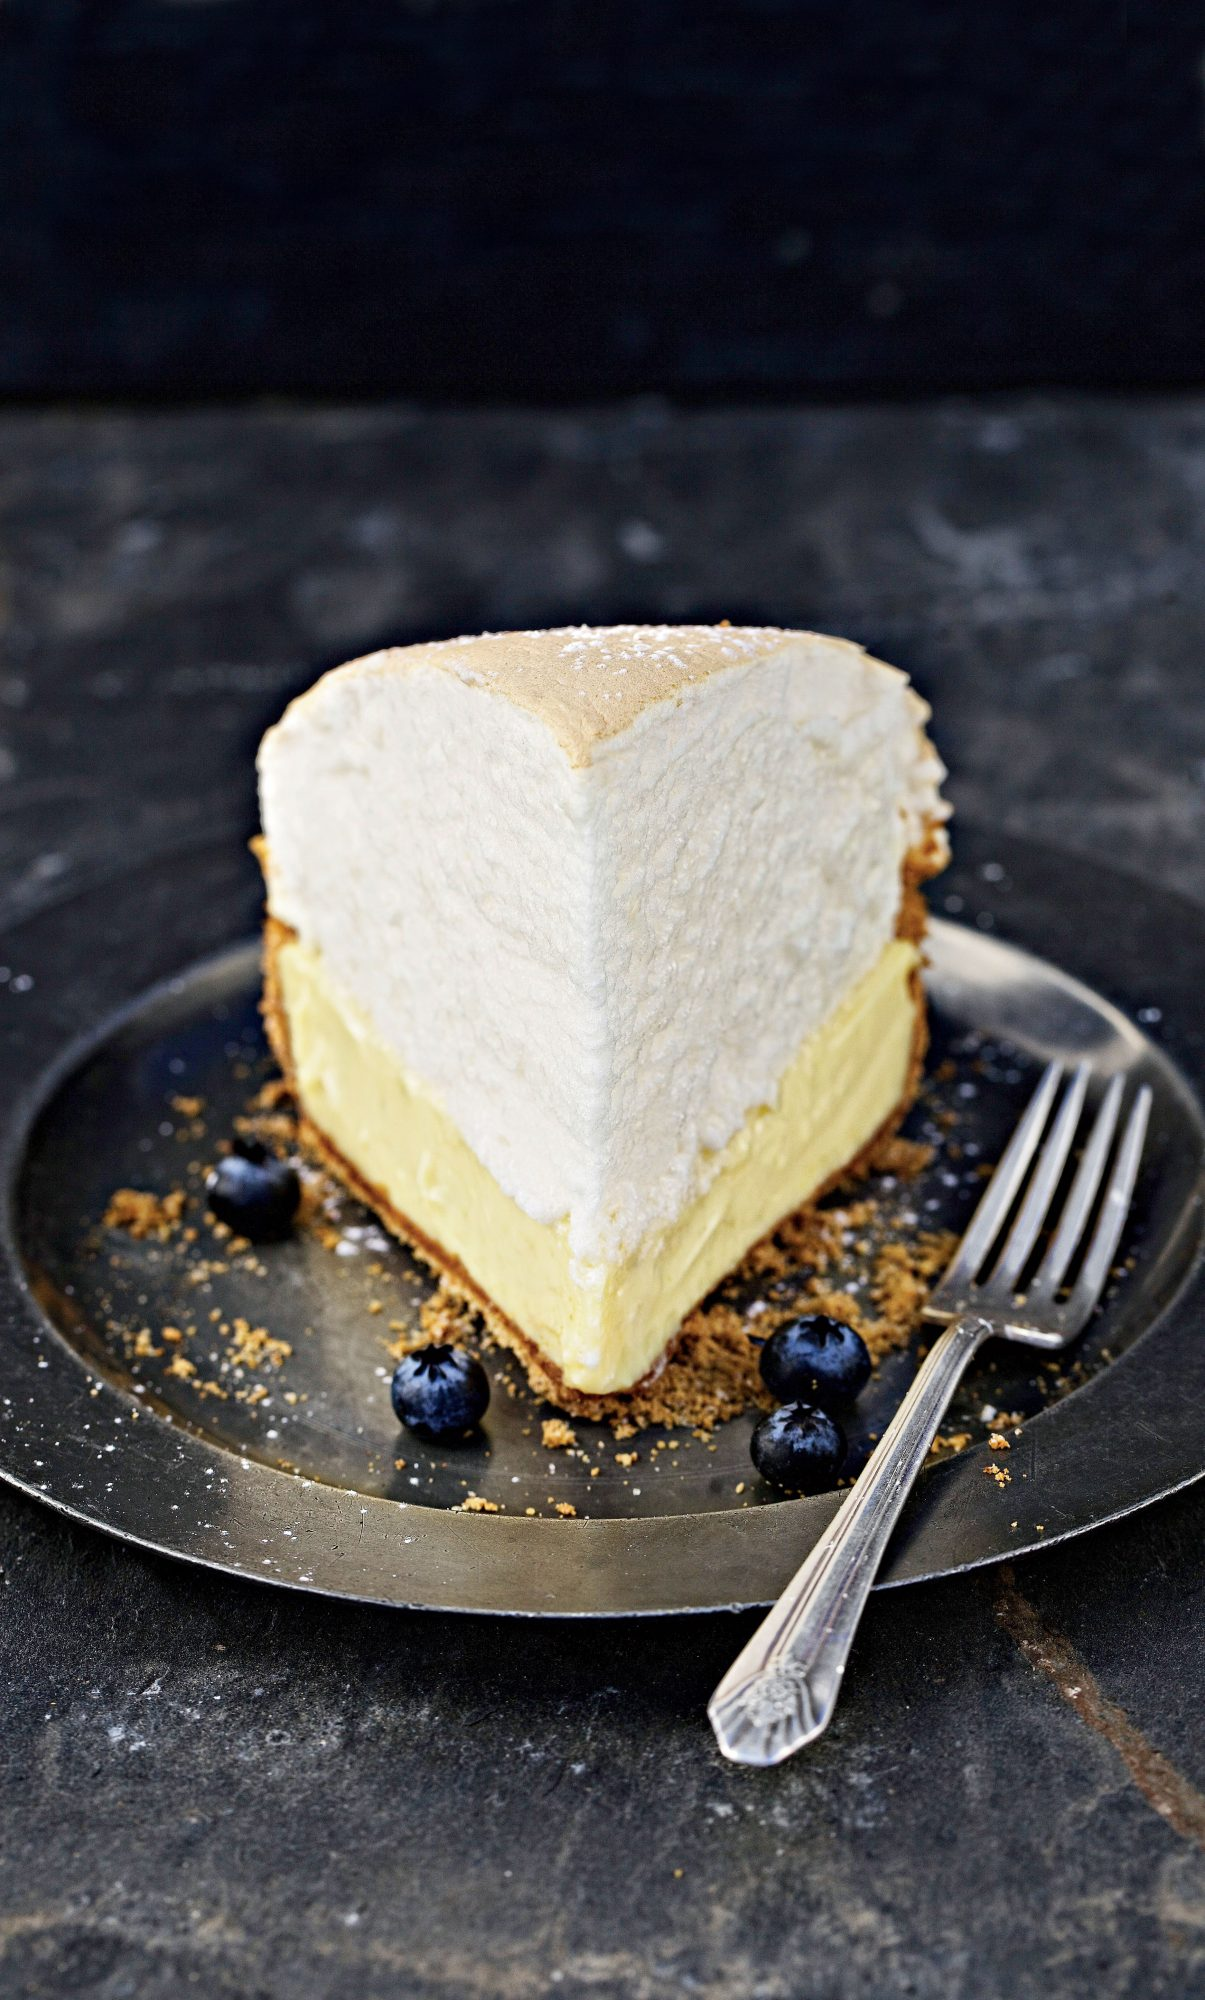 Tequila-Key Lime Meringue Pie